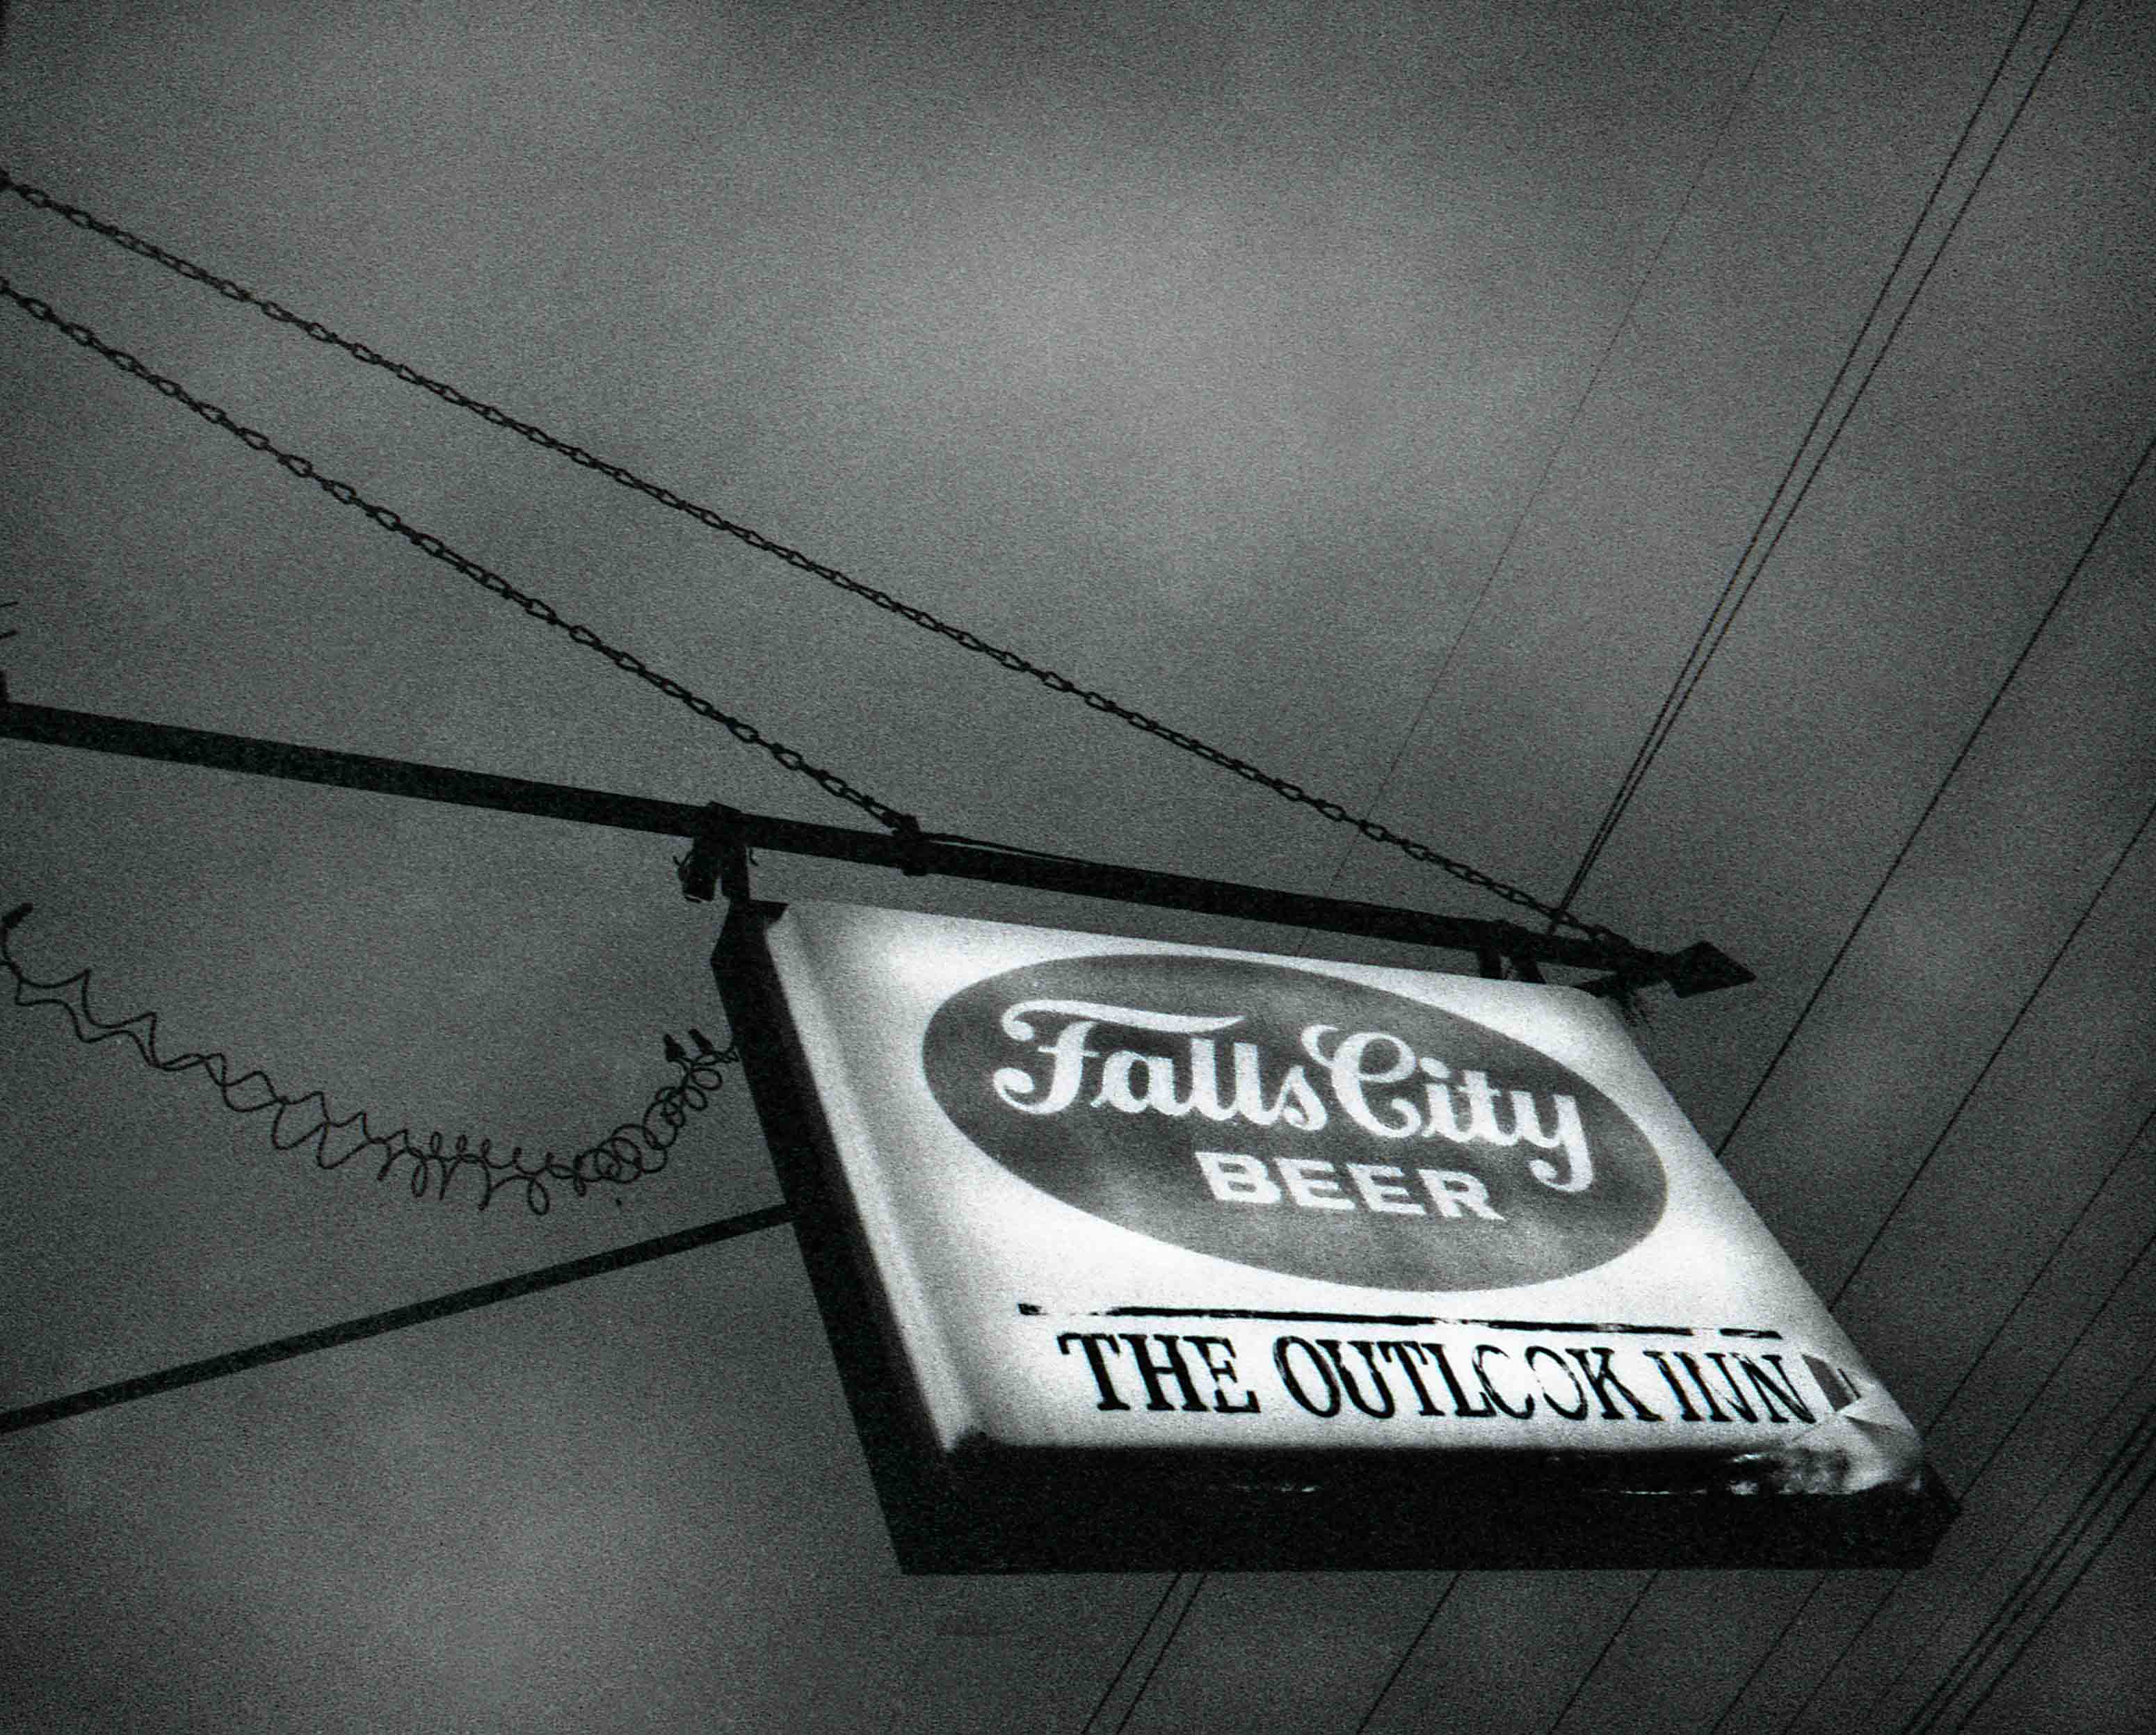 a sign for the outlook inn advertising falls city beer